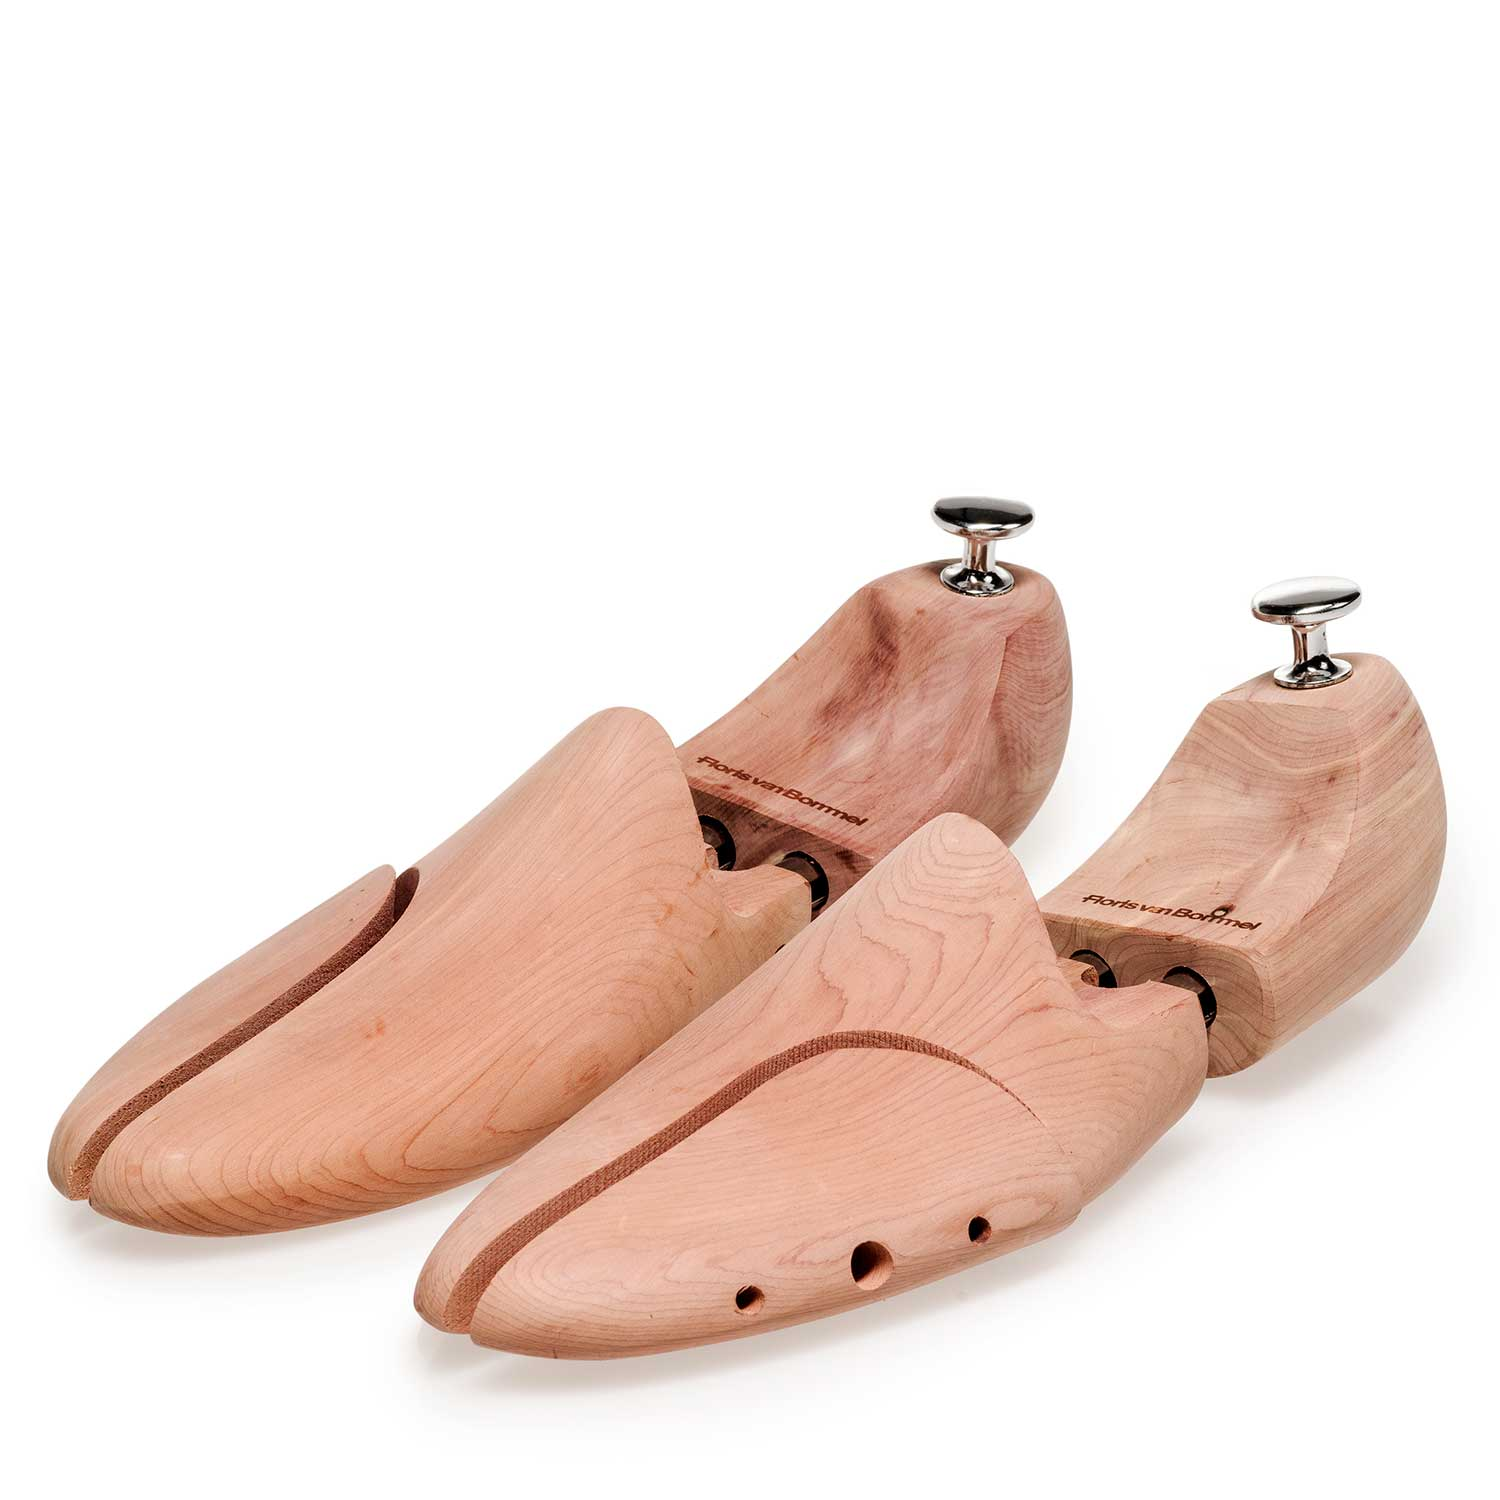 42000/01 - Cedar wooden Shoe tree